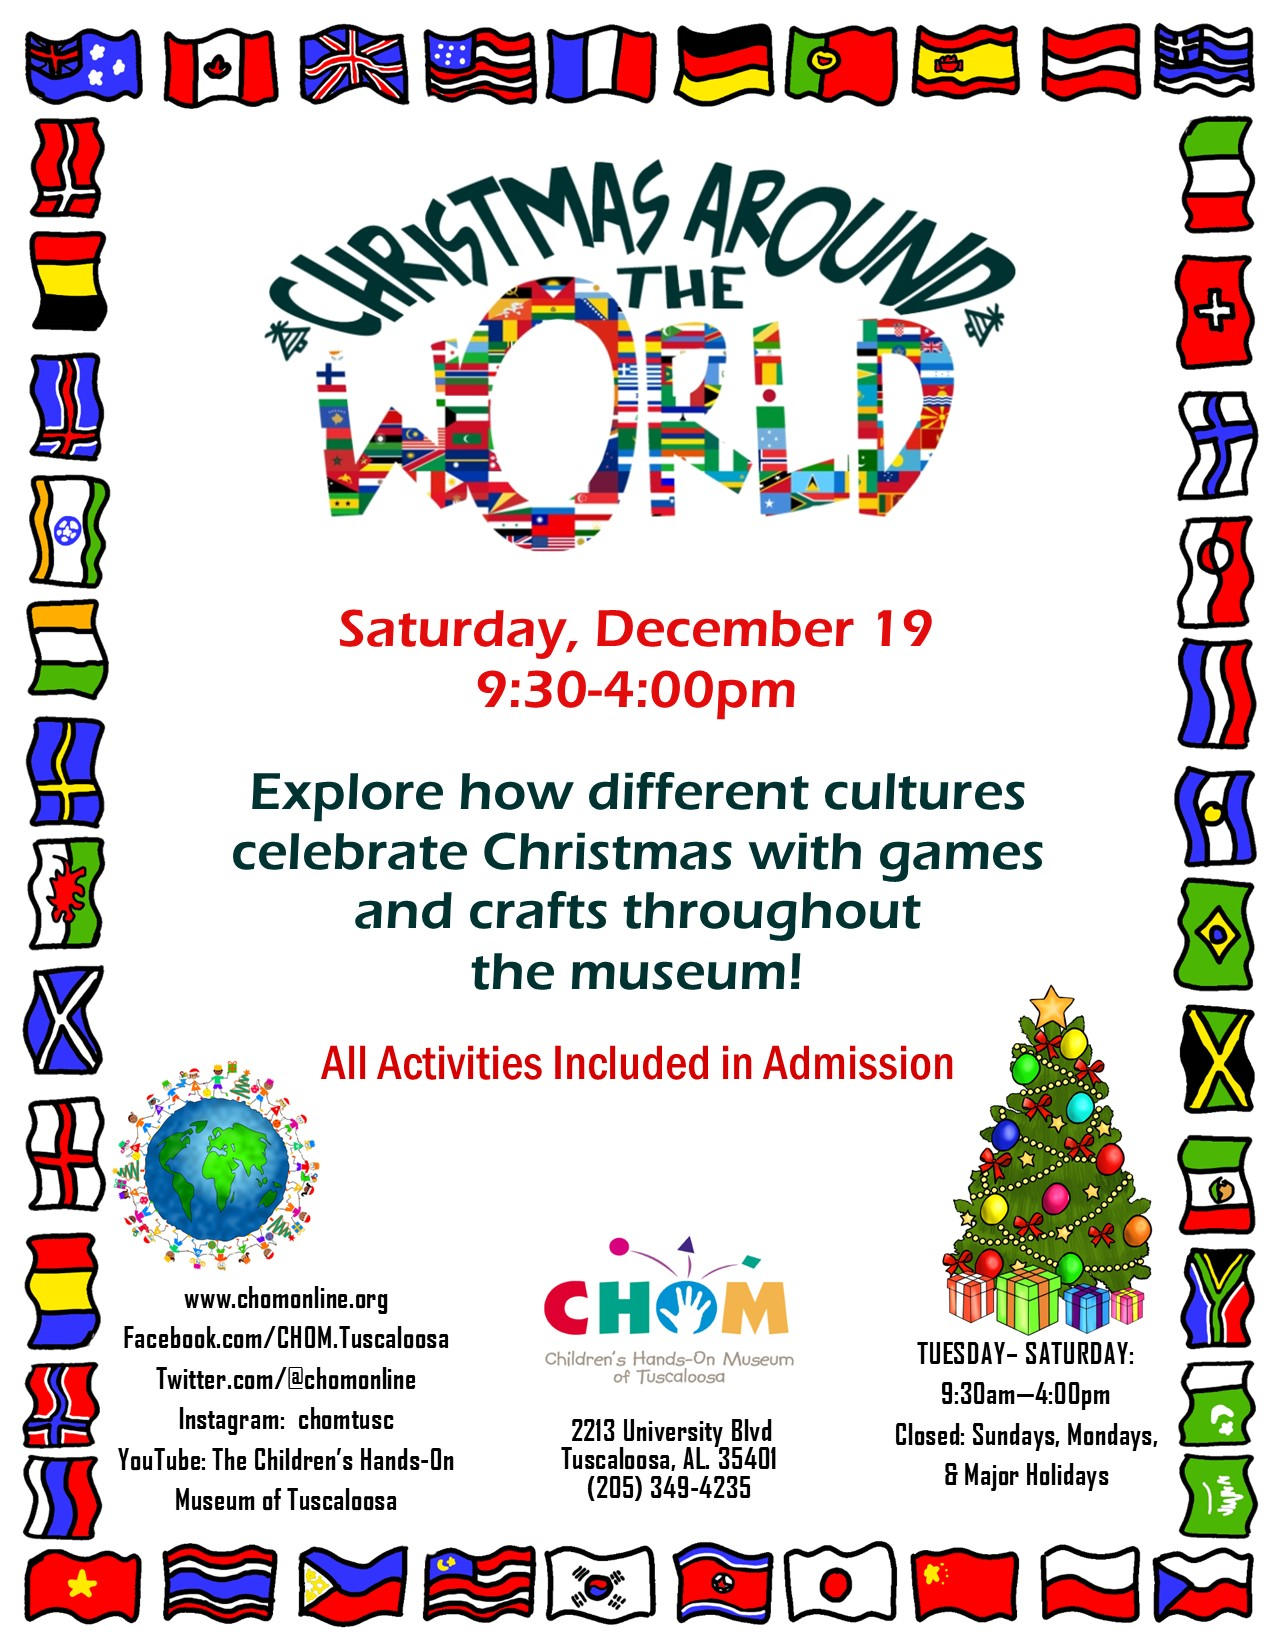 Christmas Around the World at CHOM!